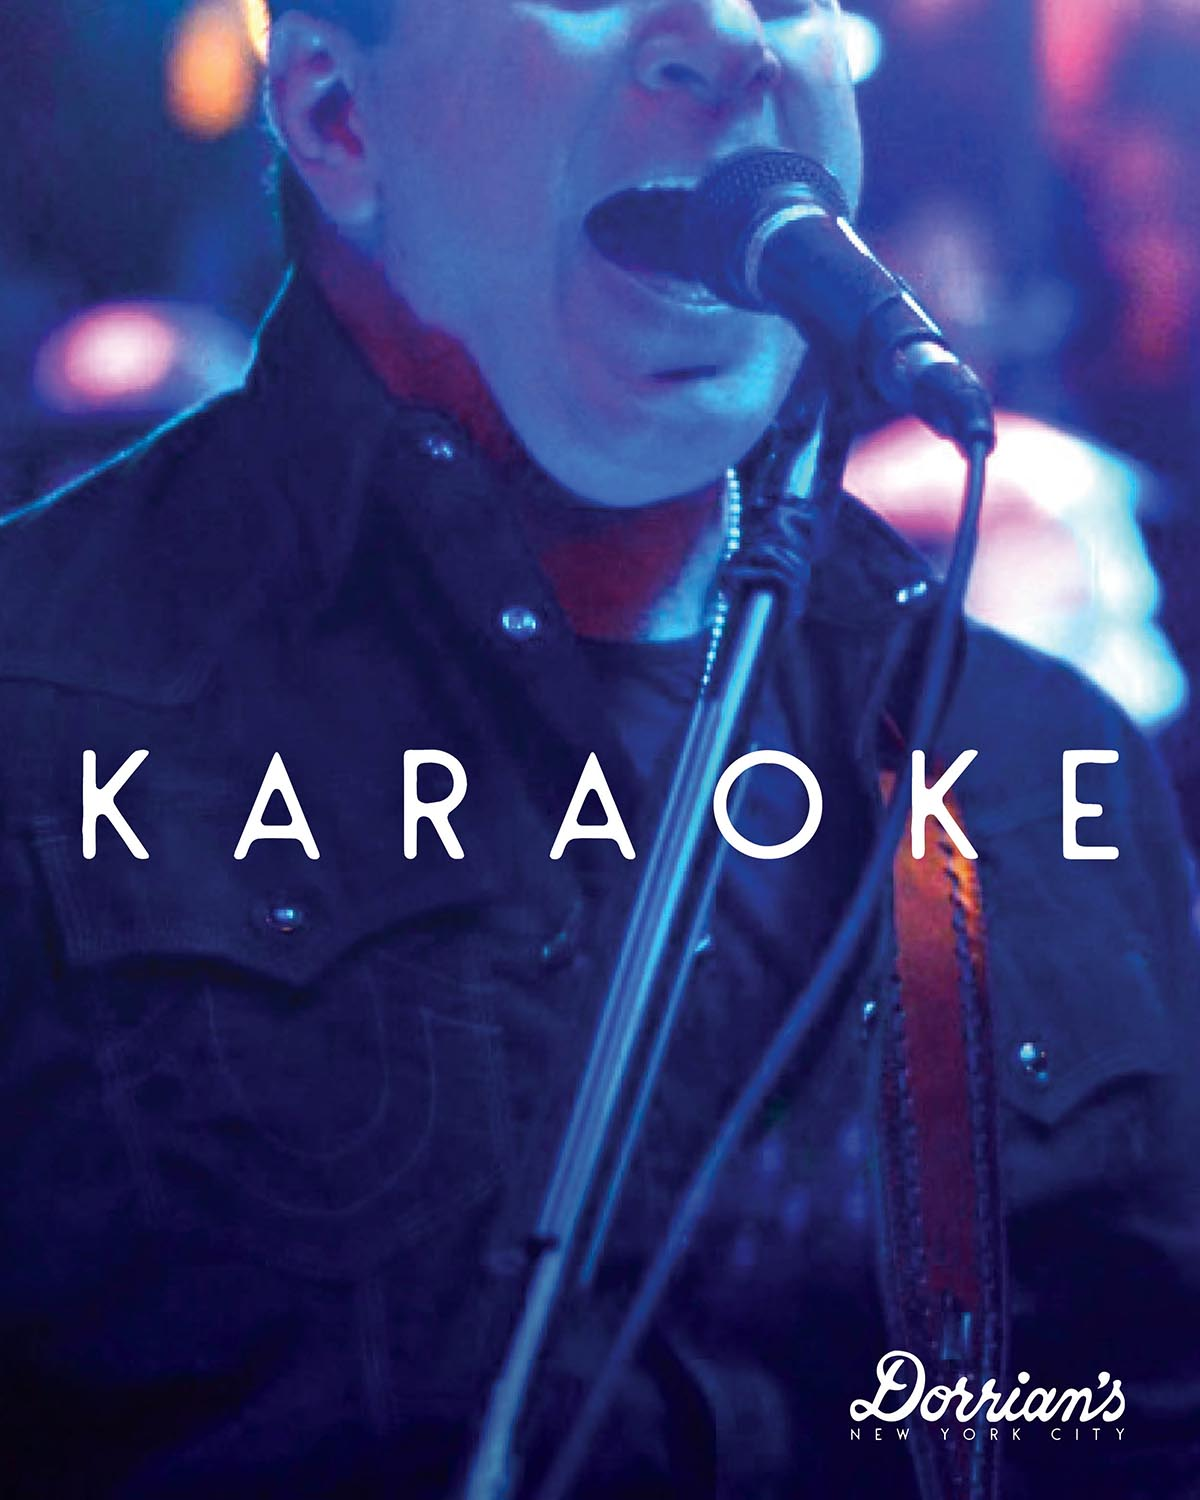 drh_nyc-2019-insta-karaoke-new-default-pic-counterfeiters-1500.jpg